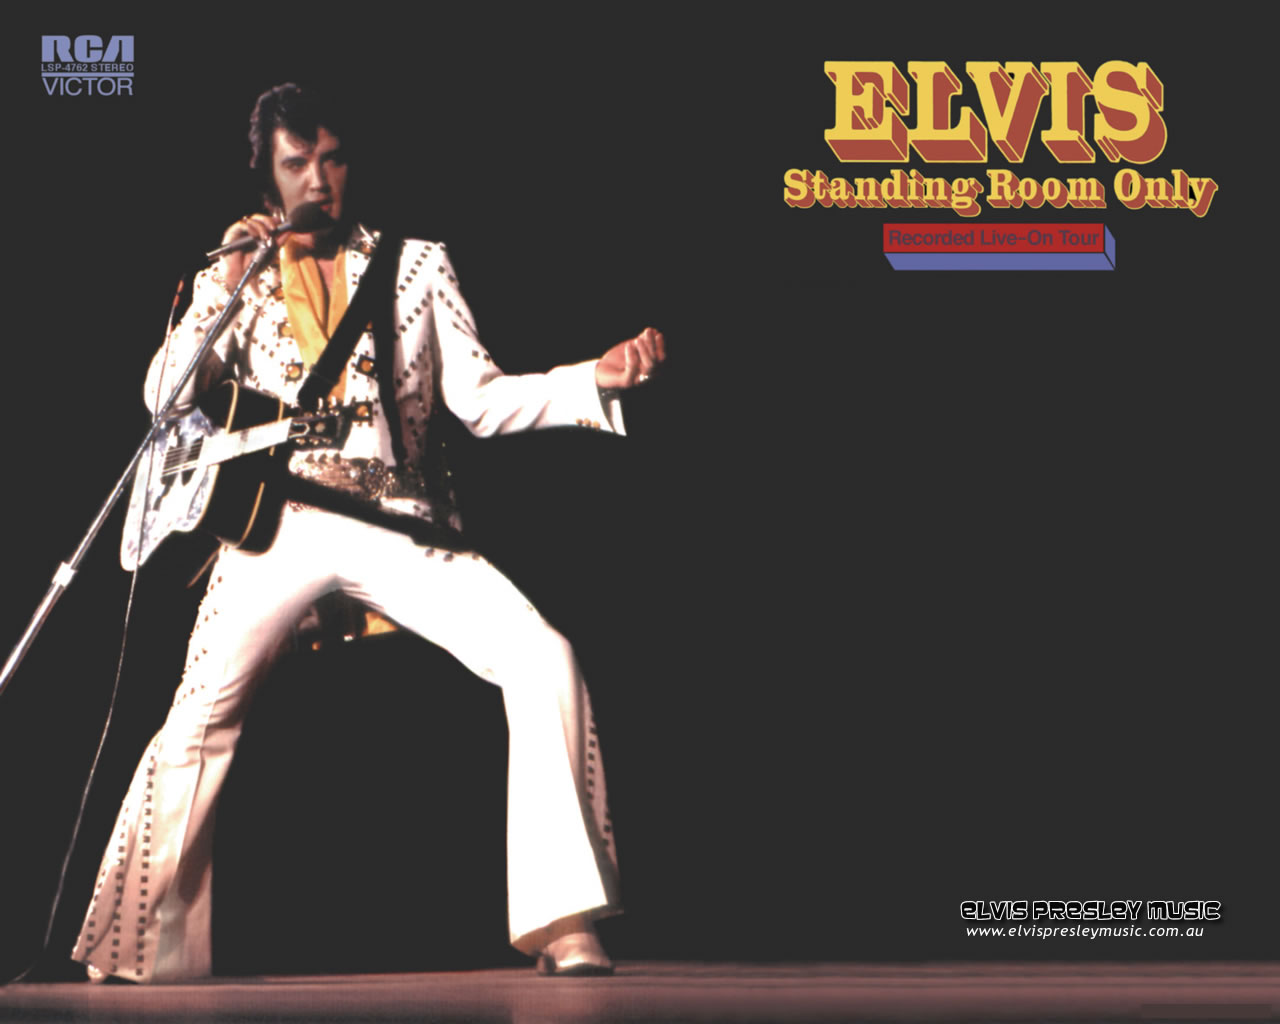 Elvis Presley Music Pc Wallpaper